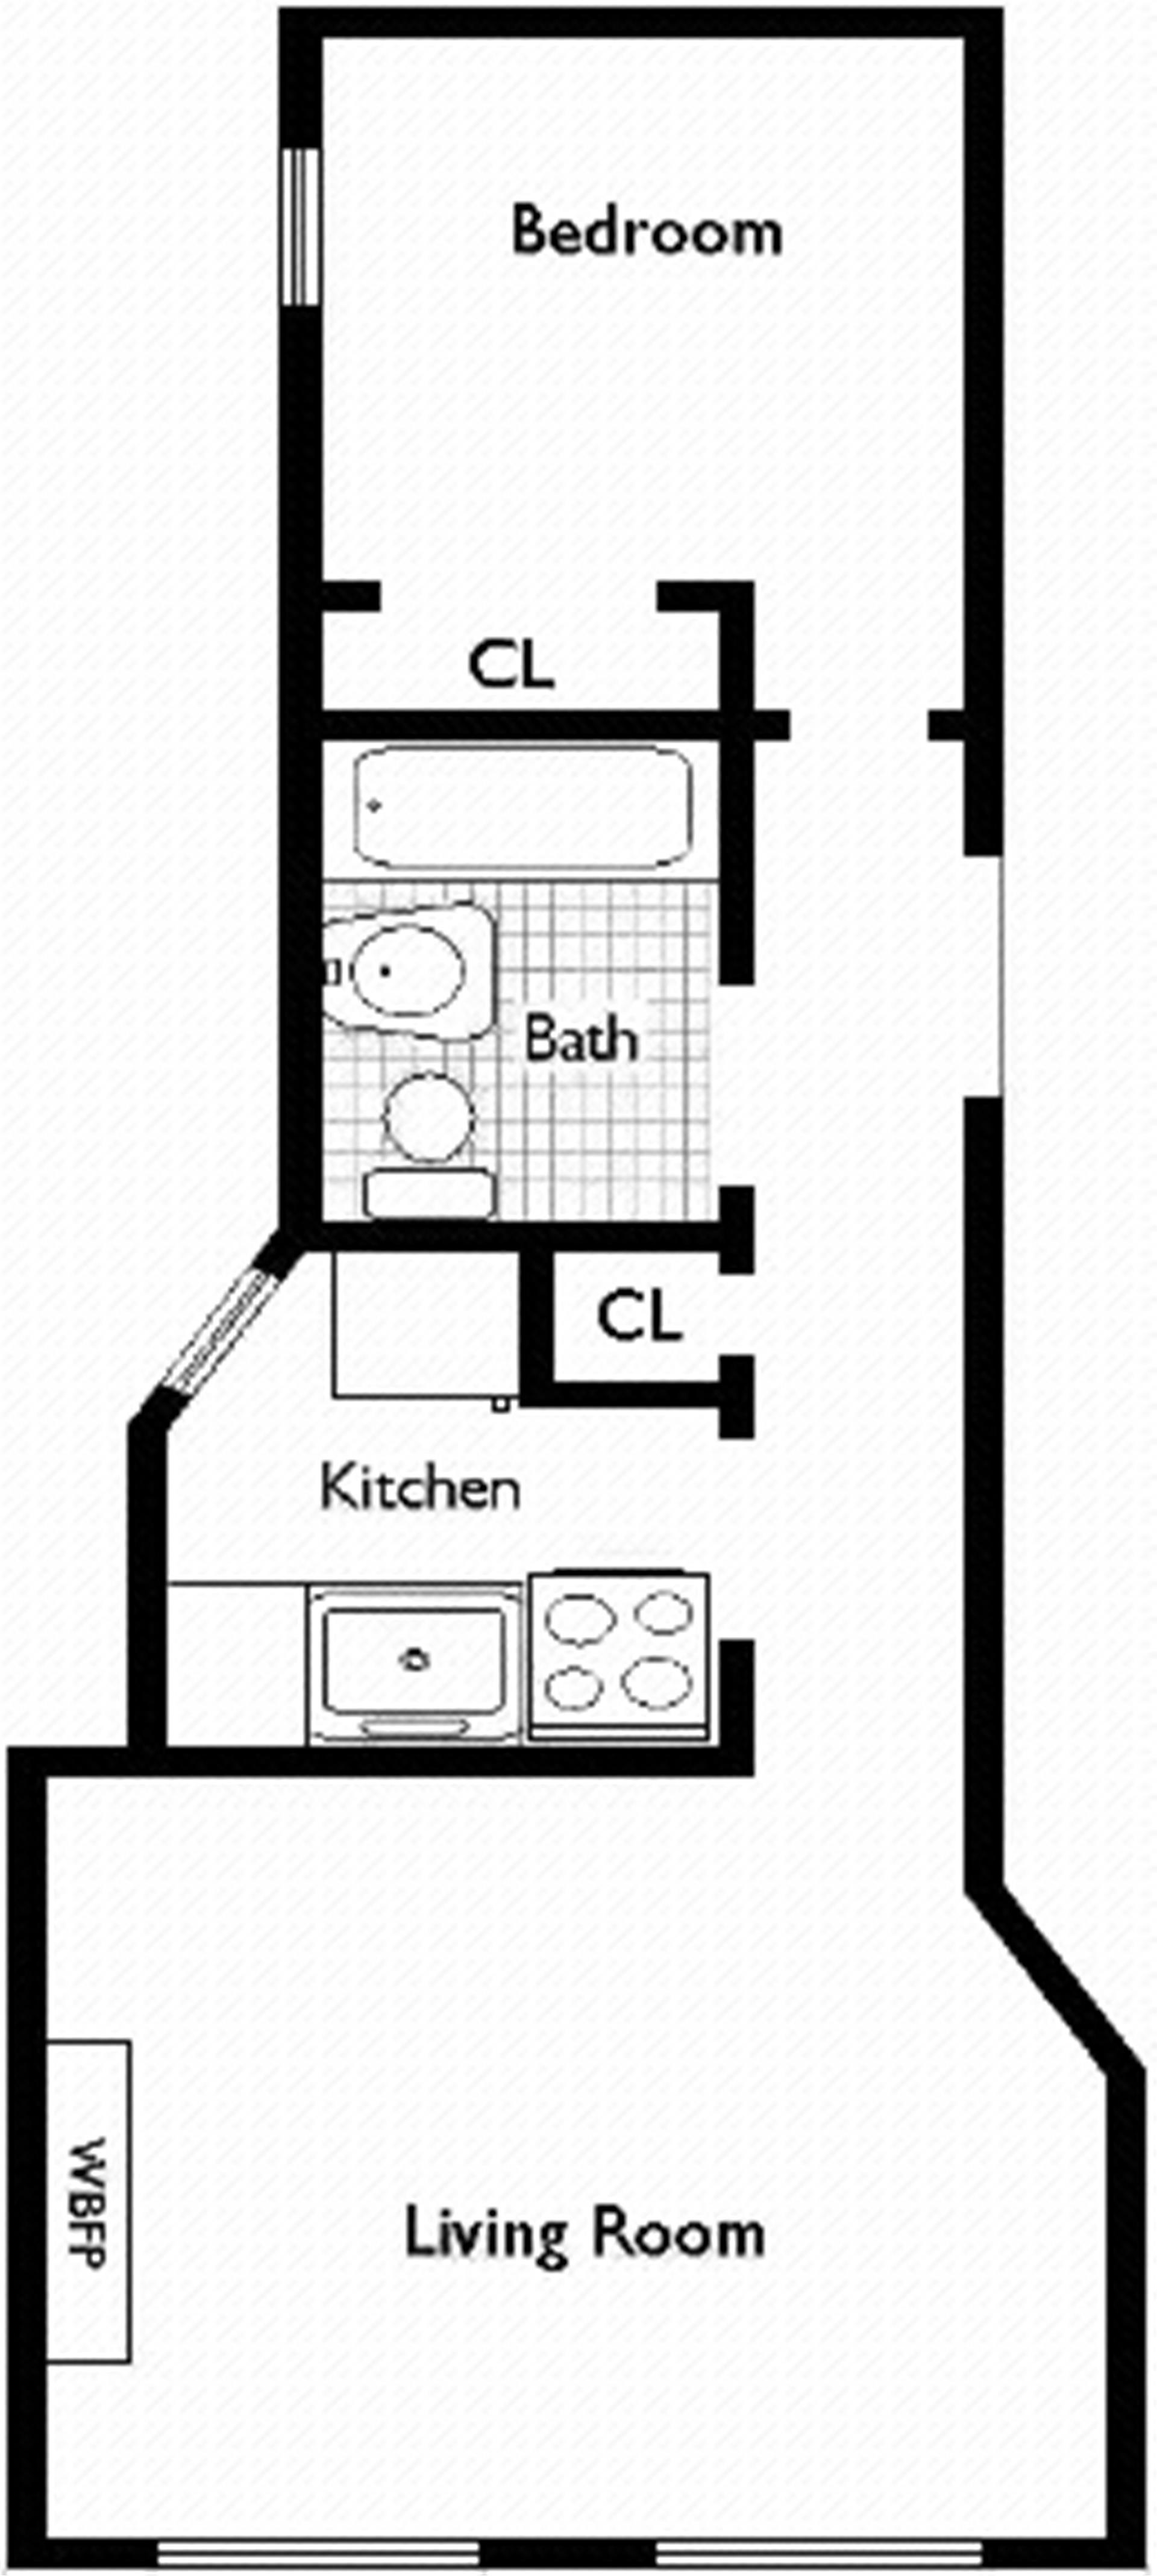 Floor plan of 46 West 65th St, 1B - Lincoln Square, New York